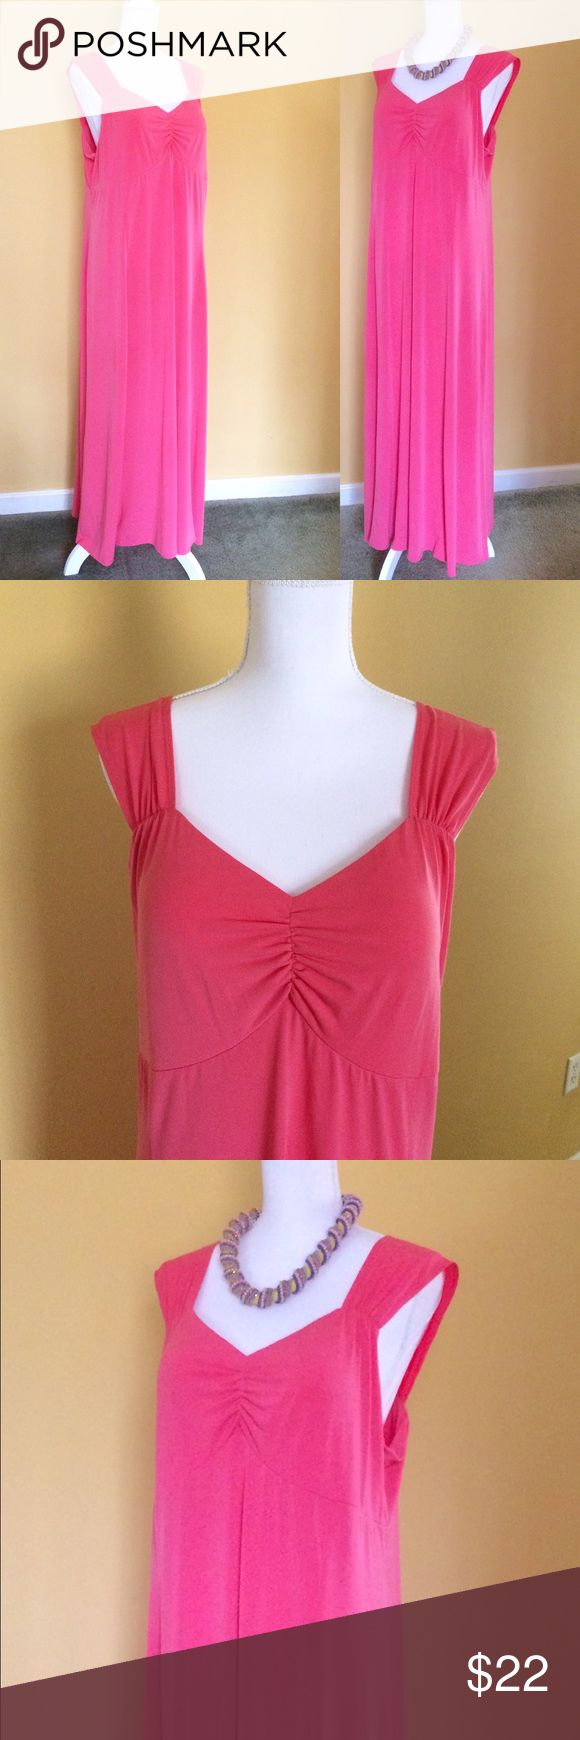 Sleeveless Coral Gown by Susan Graver XL Elegant full length gown by Susan Graver. Size XL. Polyester spandex blend that stretchy and wrinkle resistant. Perfect for a cruise and in excellent condition. From a non-smoking home. Susan Graver Dresses Maxi